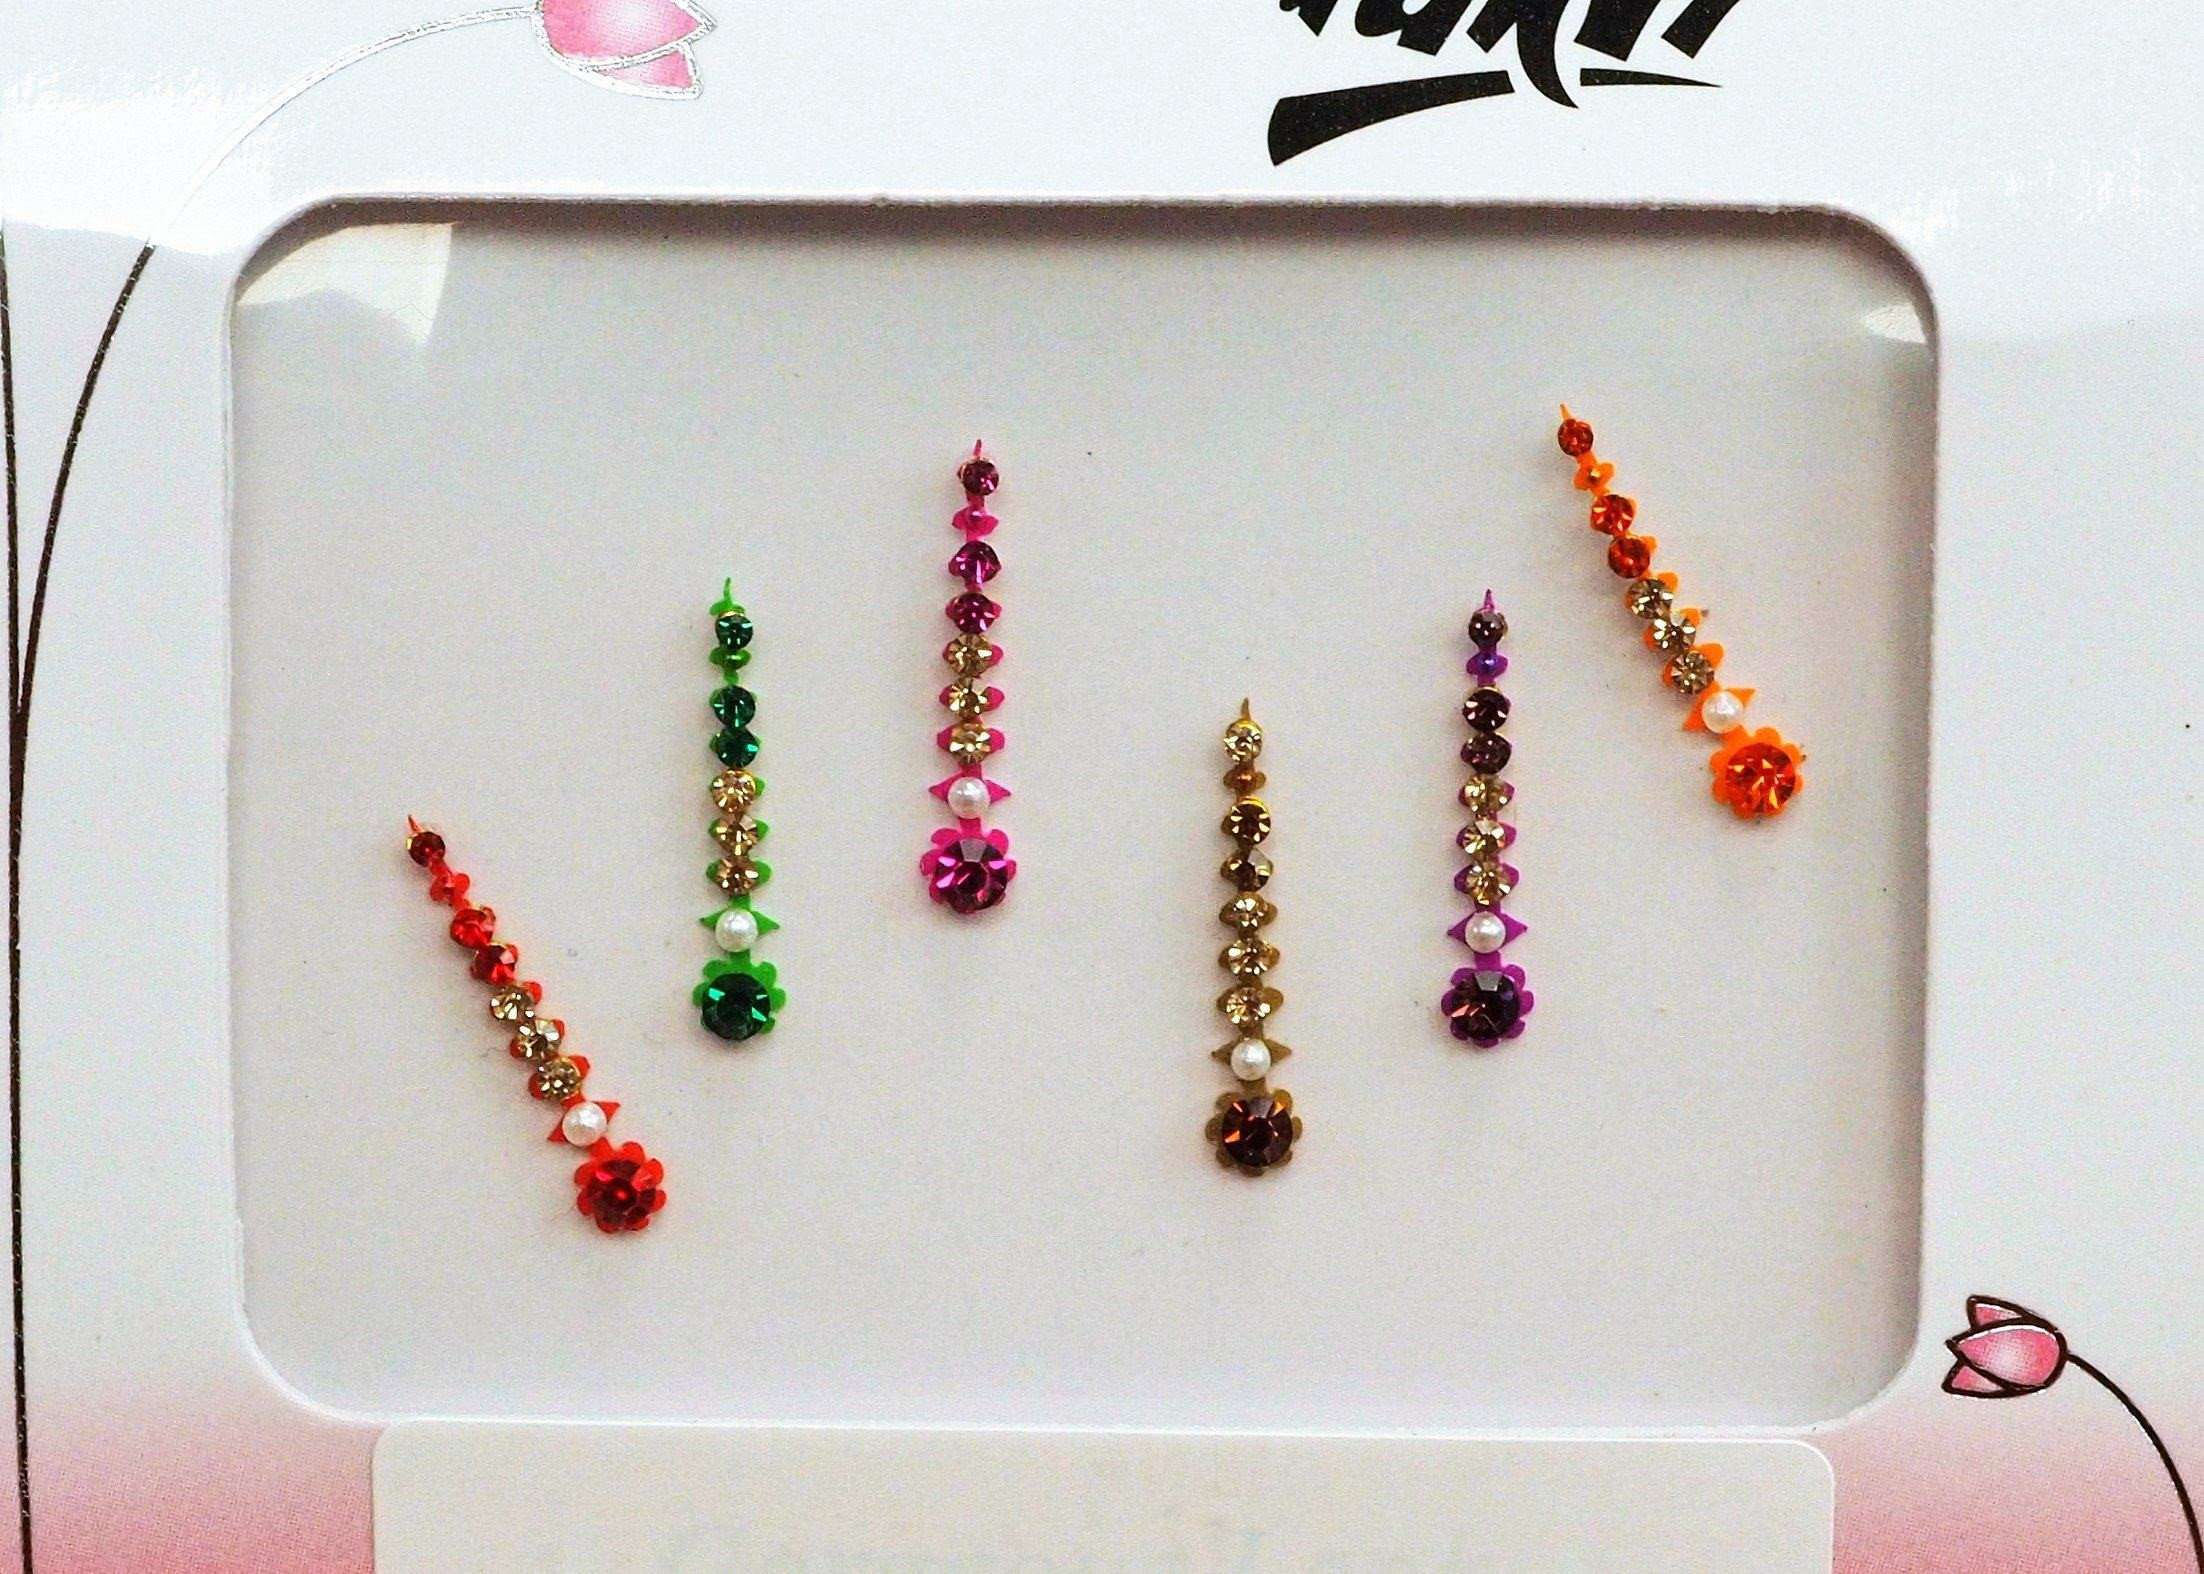 BollywoodParty - Pack of 4 Medium Bindis - Party, fancy dress TN17040K 1017 - Prachy Creations